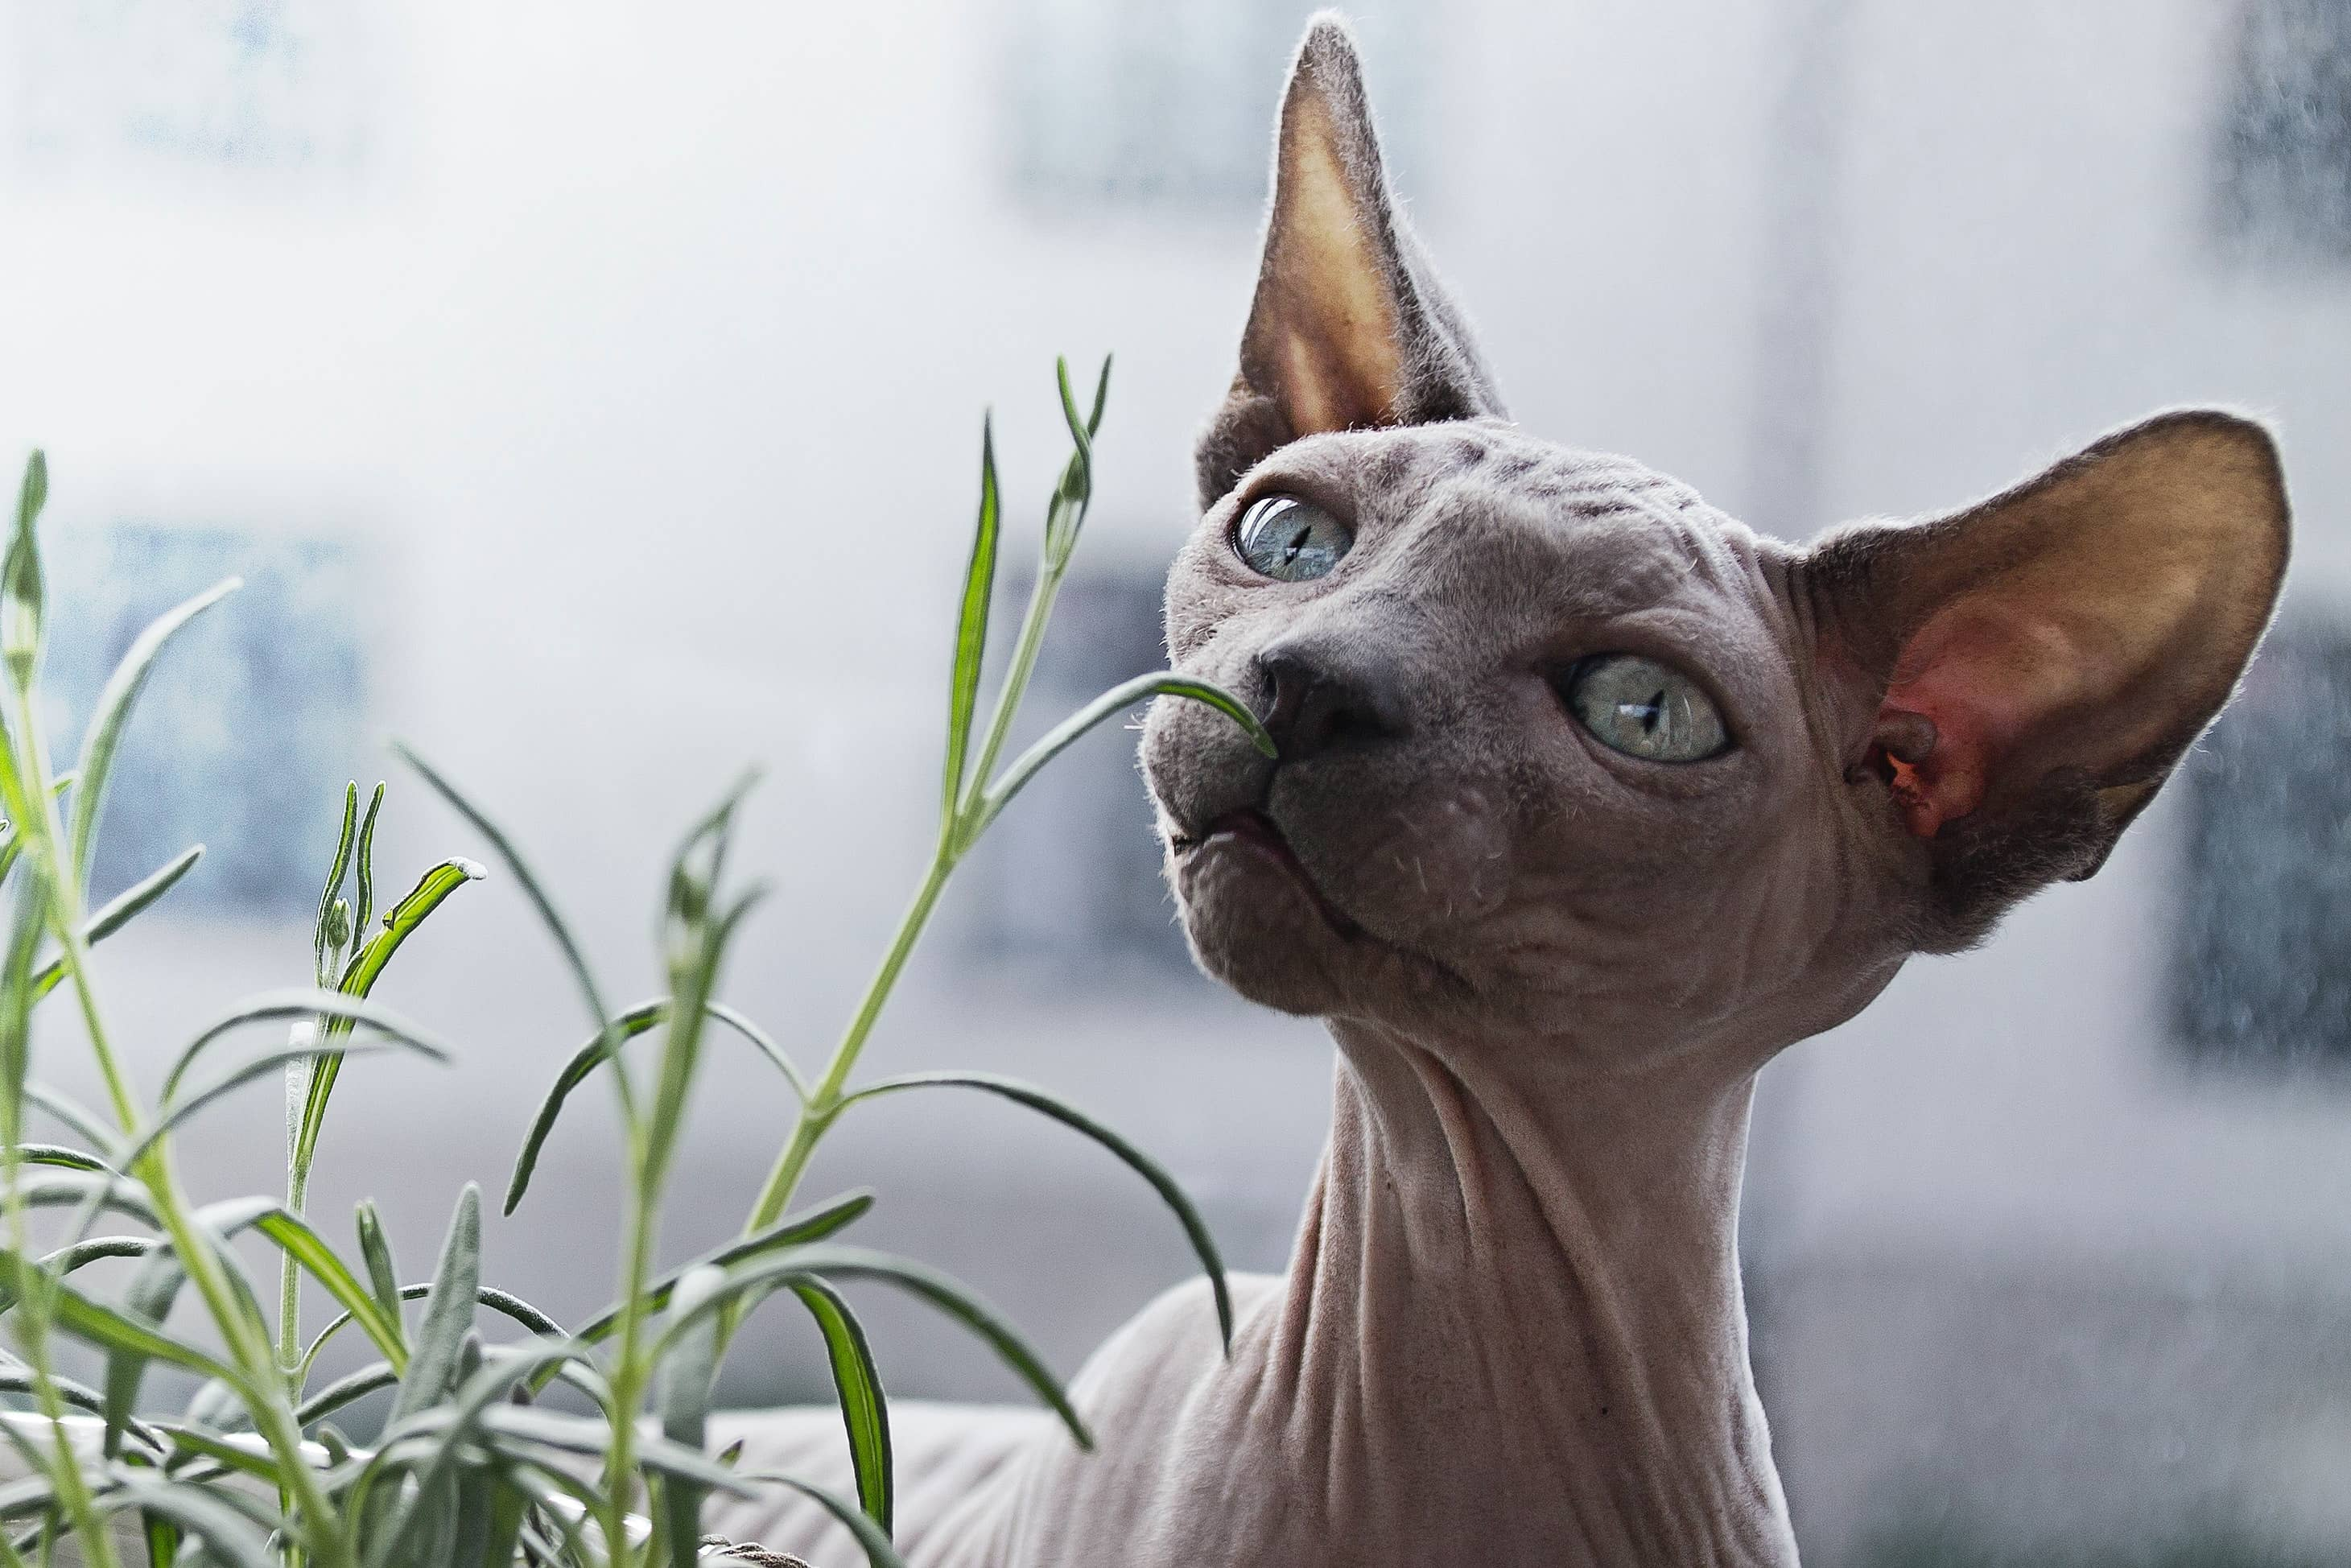 Sphynx cat smelling an indoor plant